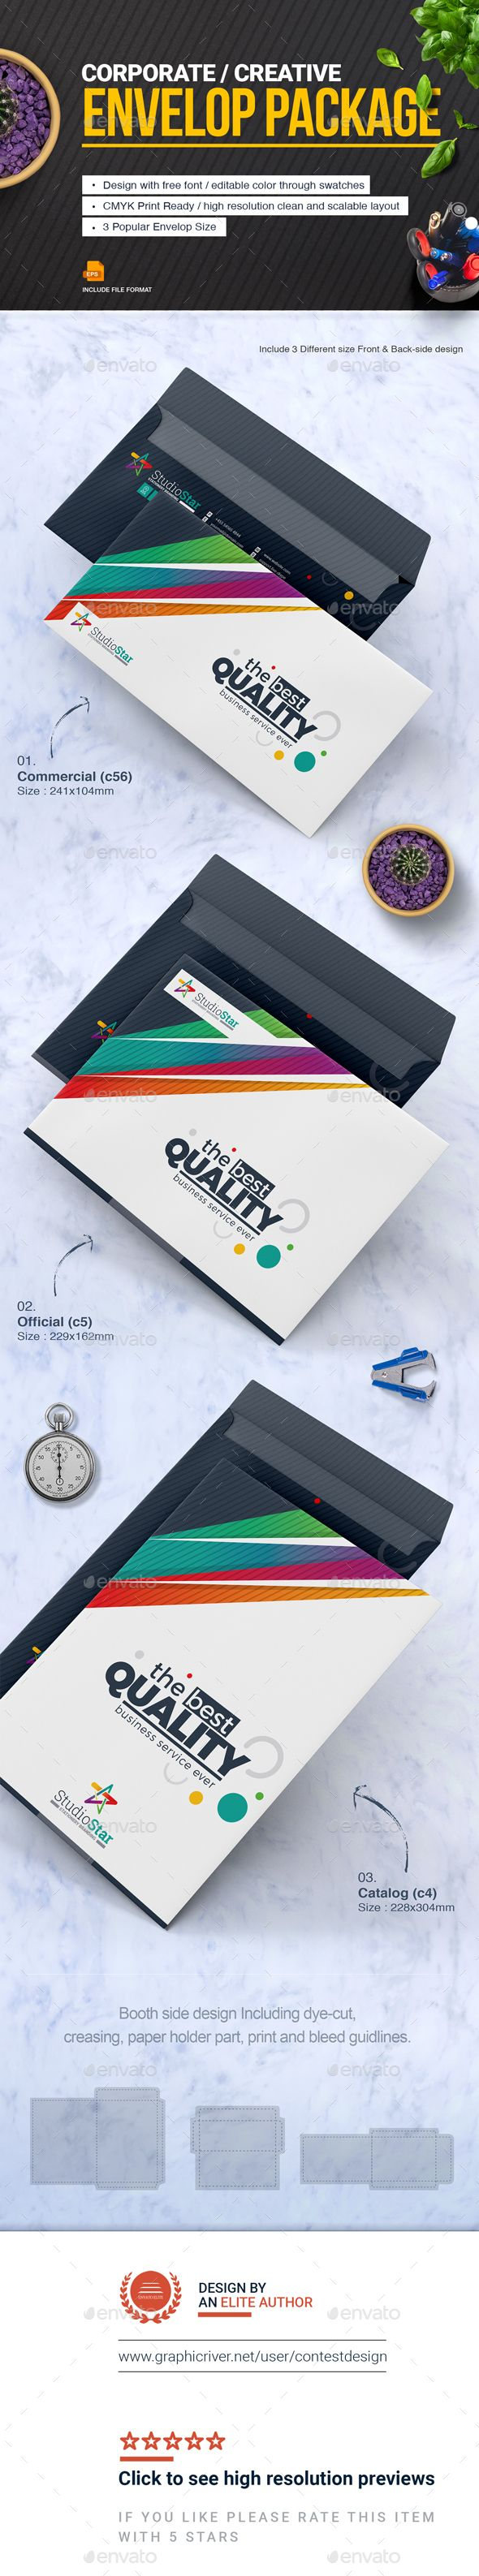 Envelop Package Design Template  Package Design Stationery